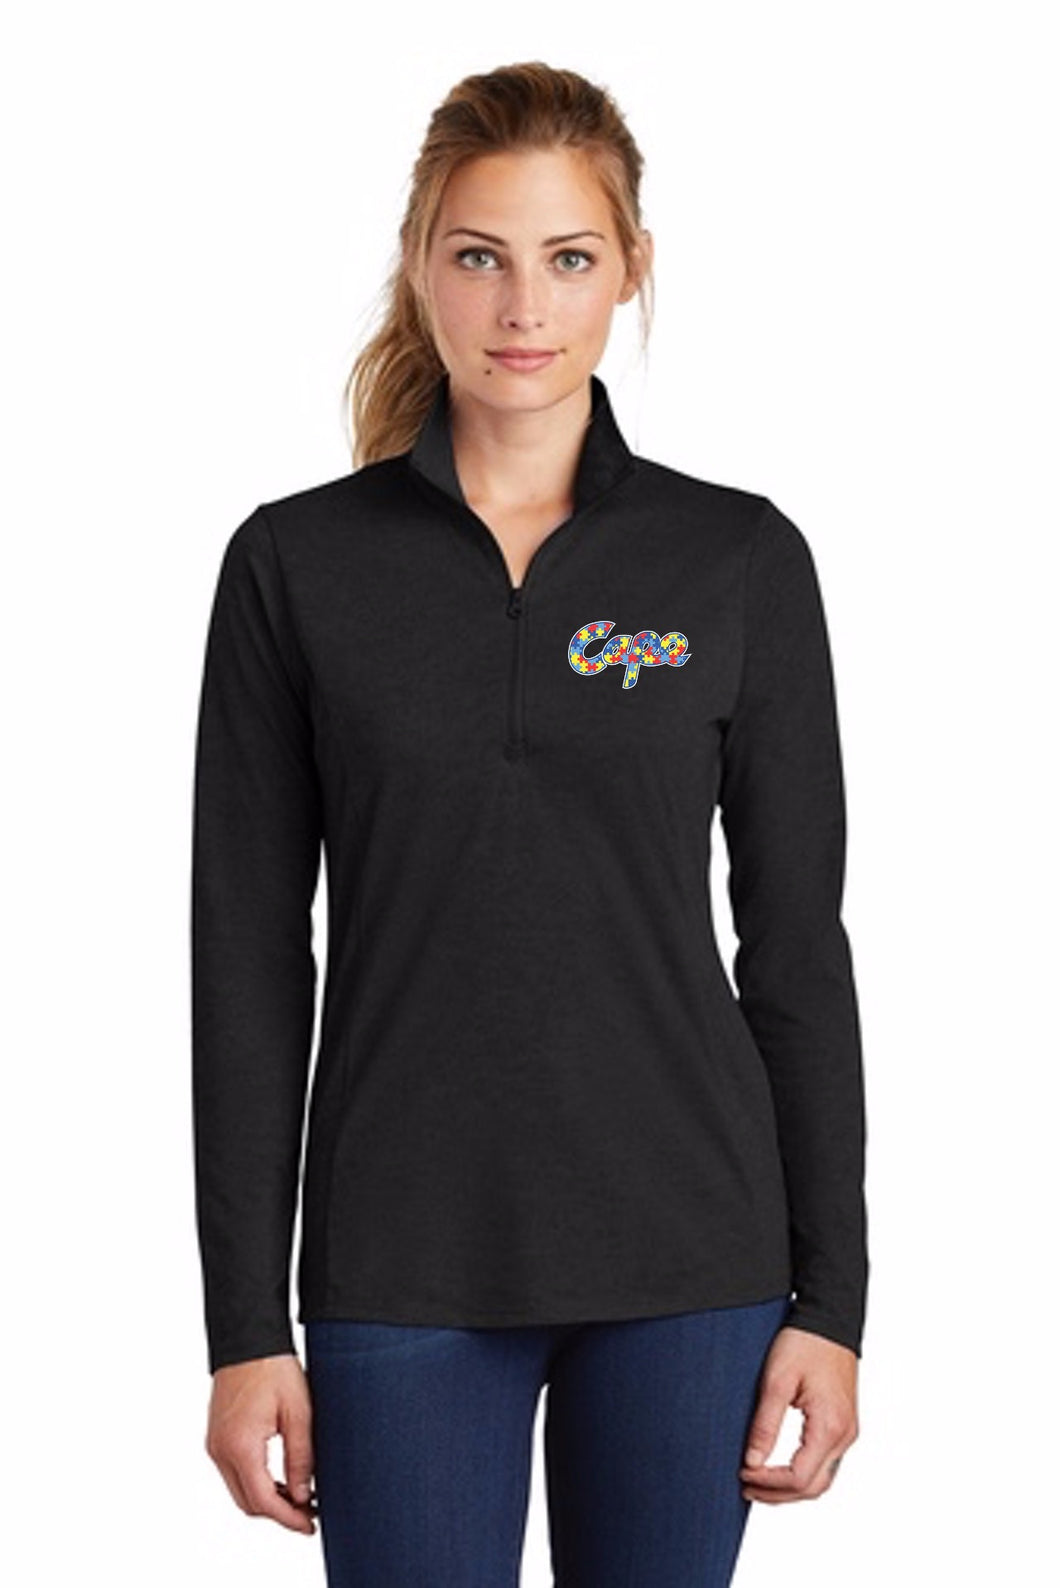 Sport-Tek ® Ladies PosiCharge ® Tri-Blend Wicking 1/4-Zip Pullover (NEW!)